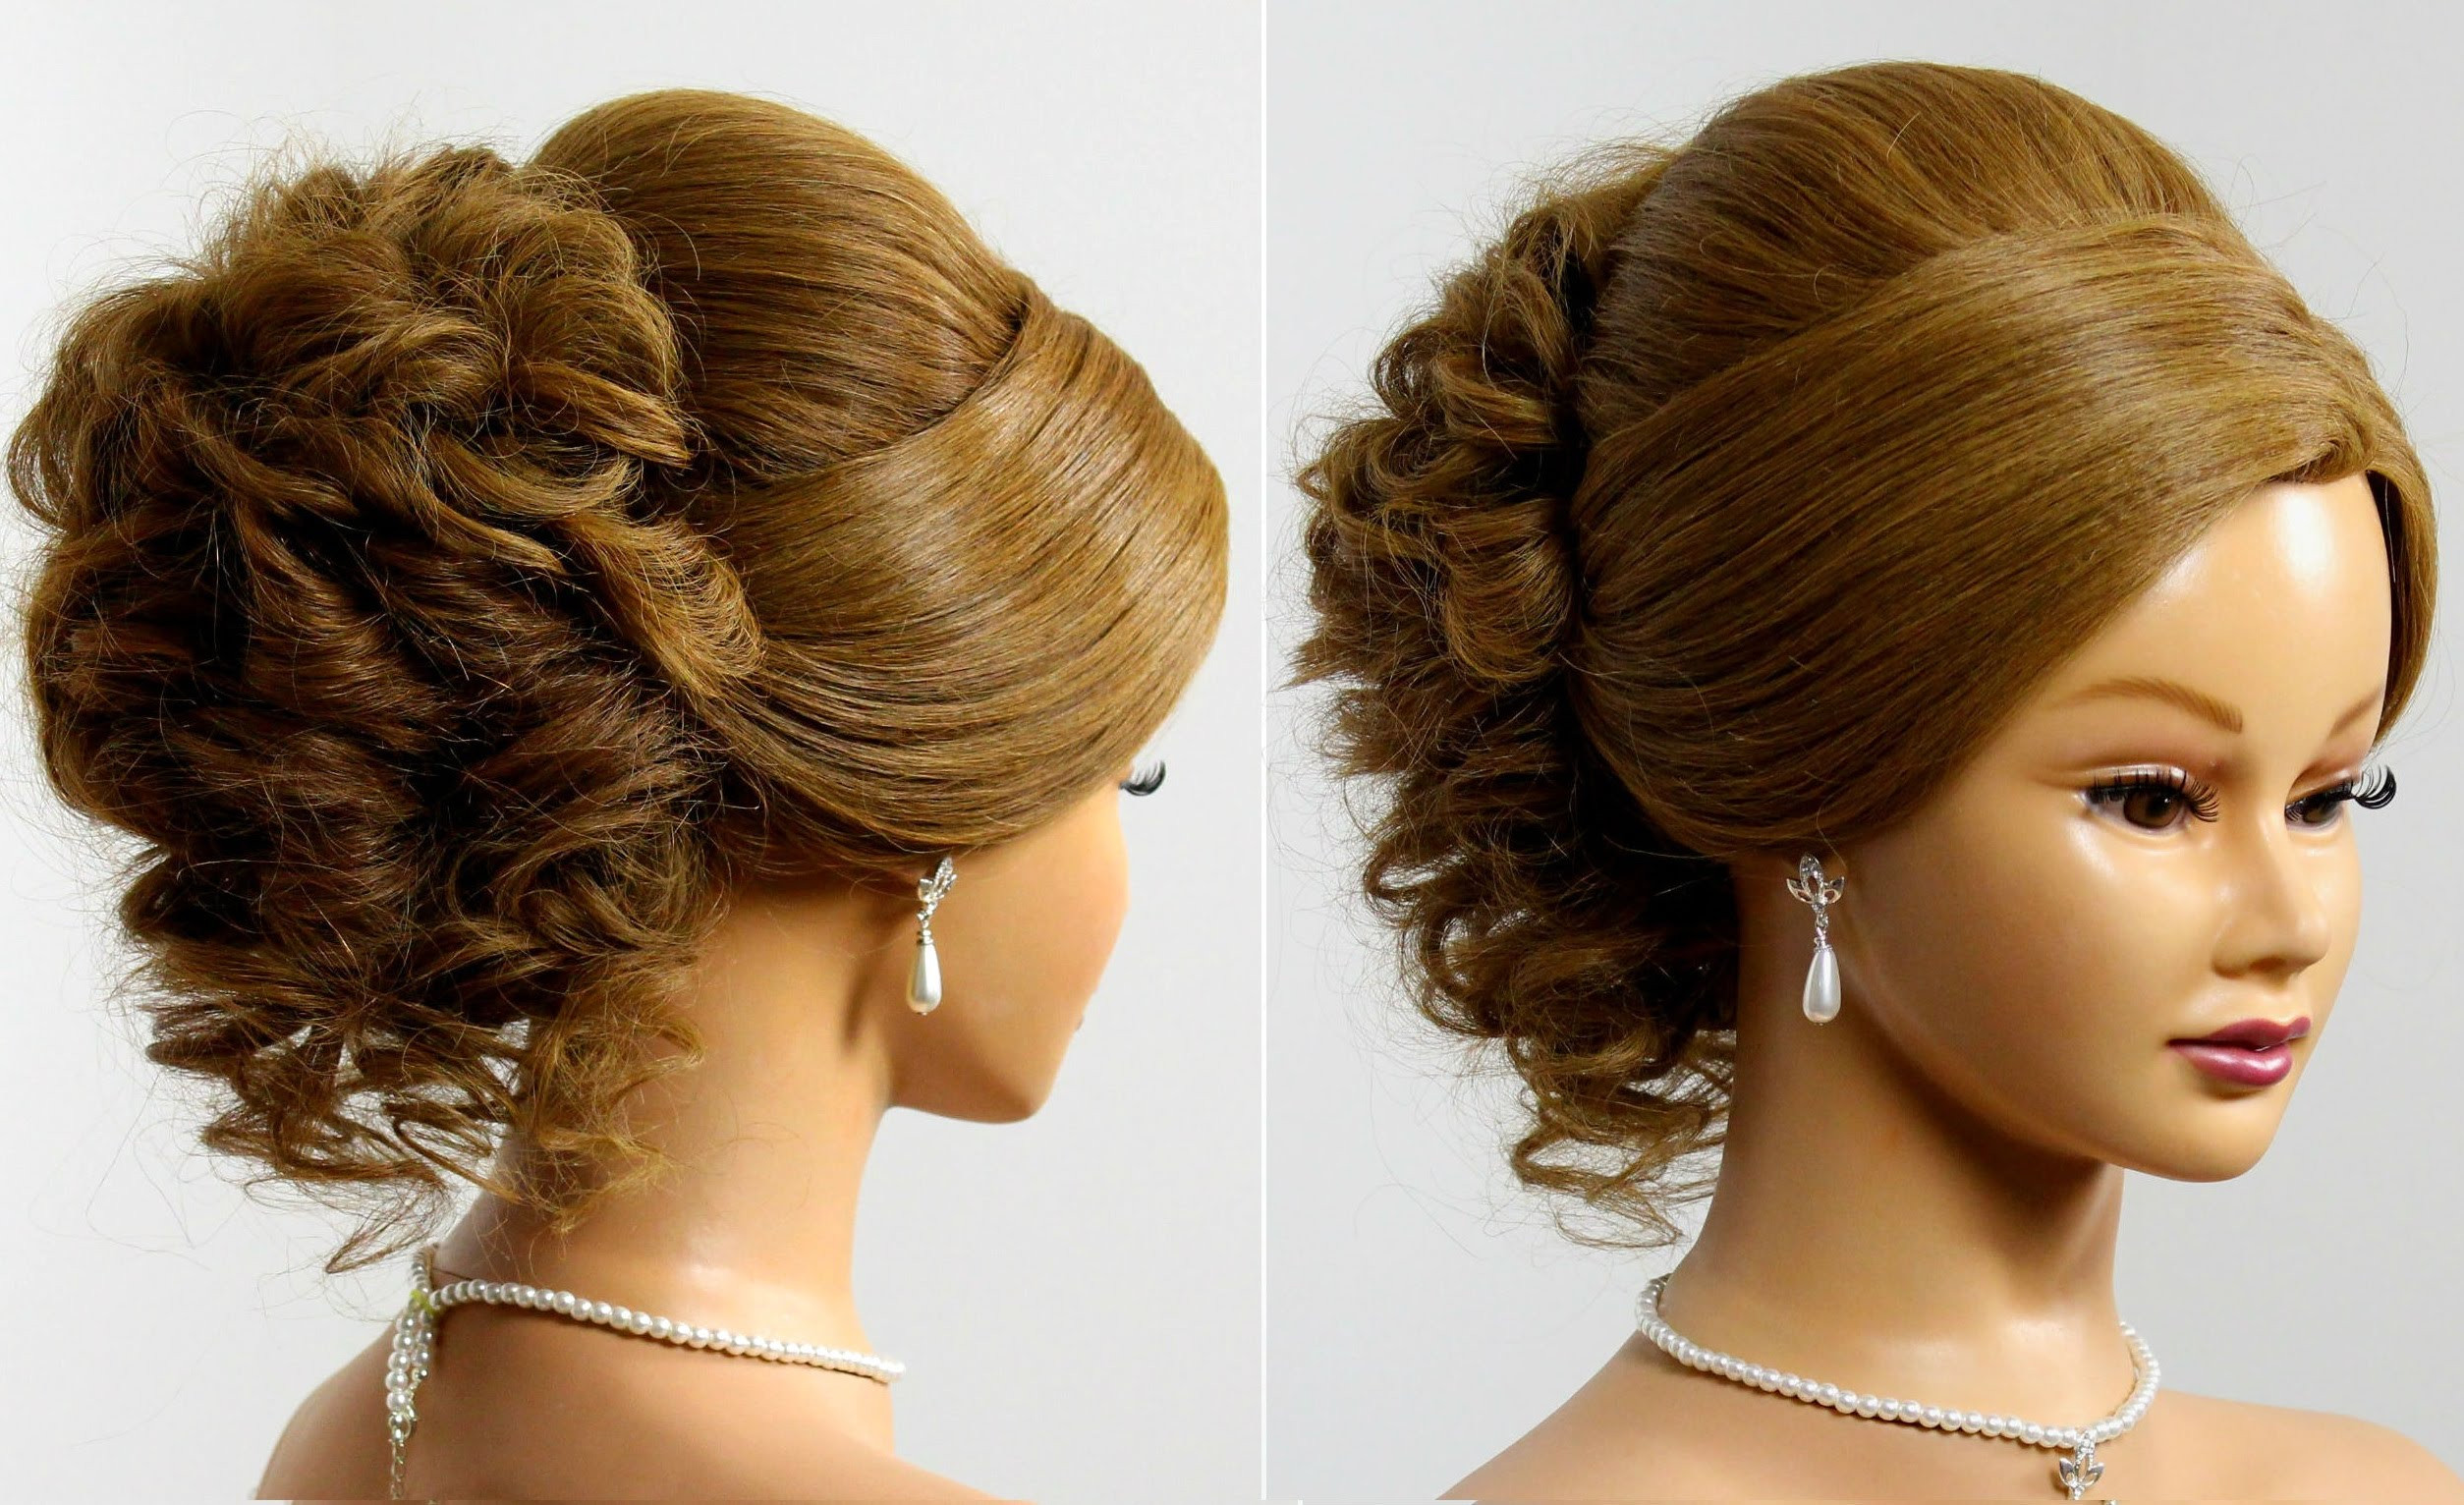 Prom Hairstyles For Medium Hair  Hairstyles for medium hair for prom Hairstyle for women